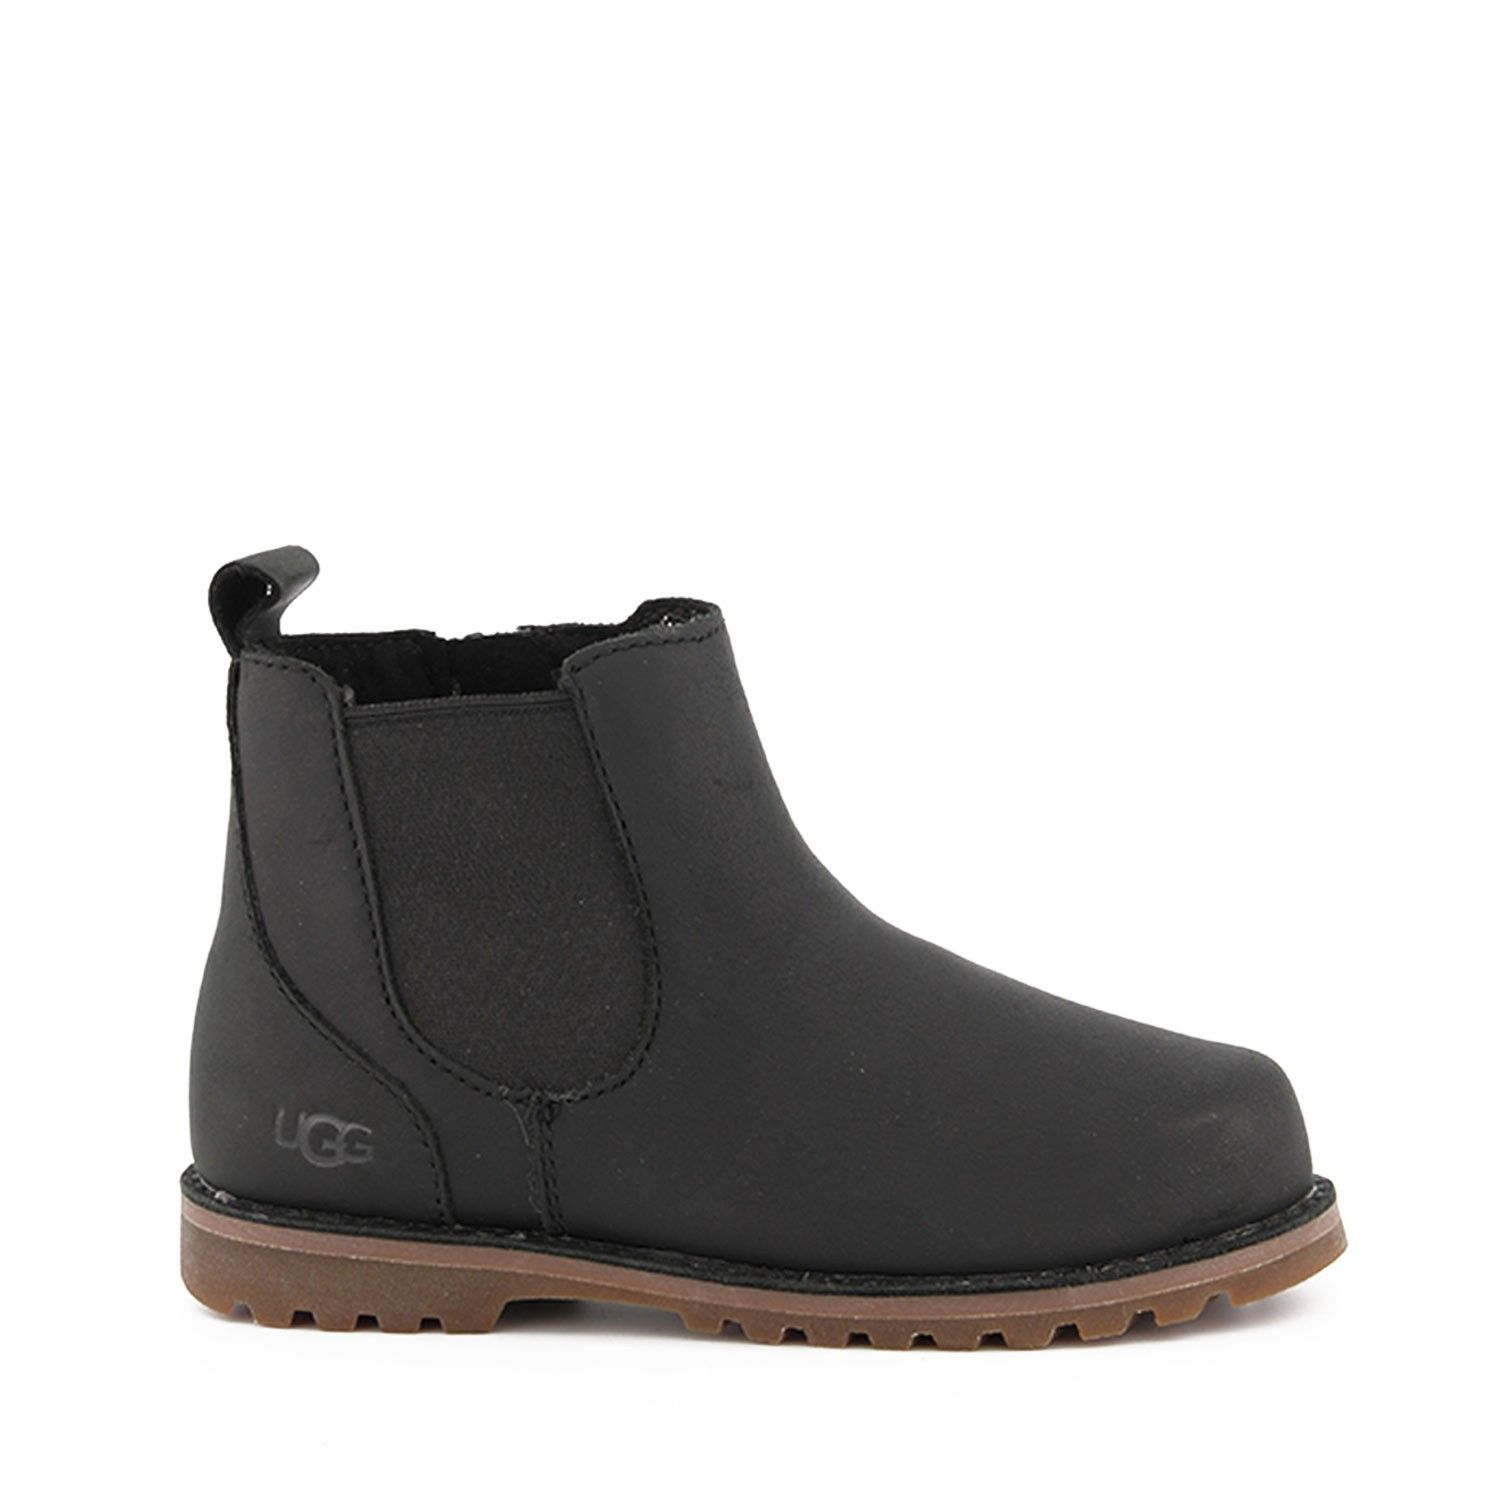 Picture of UGG 1100172 kids boots black